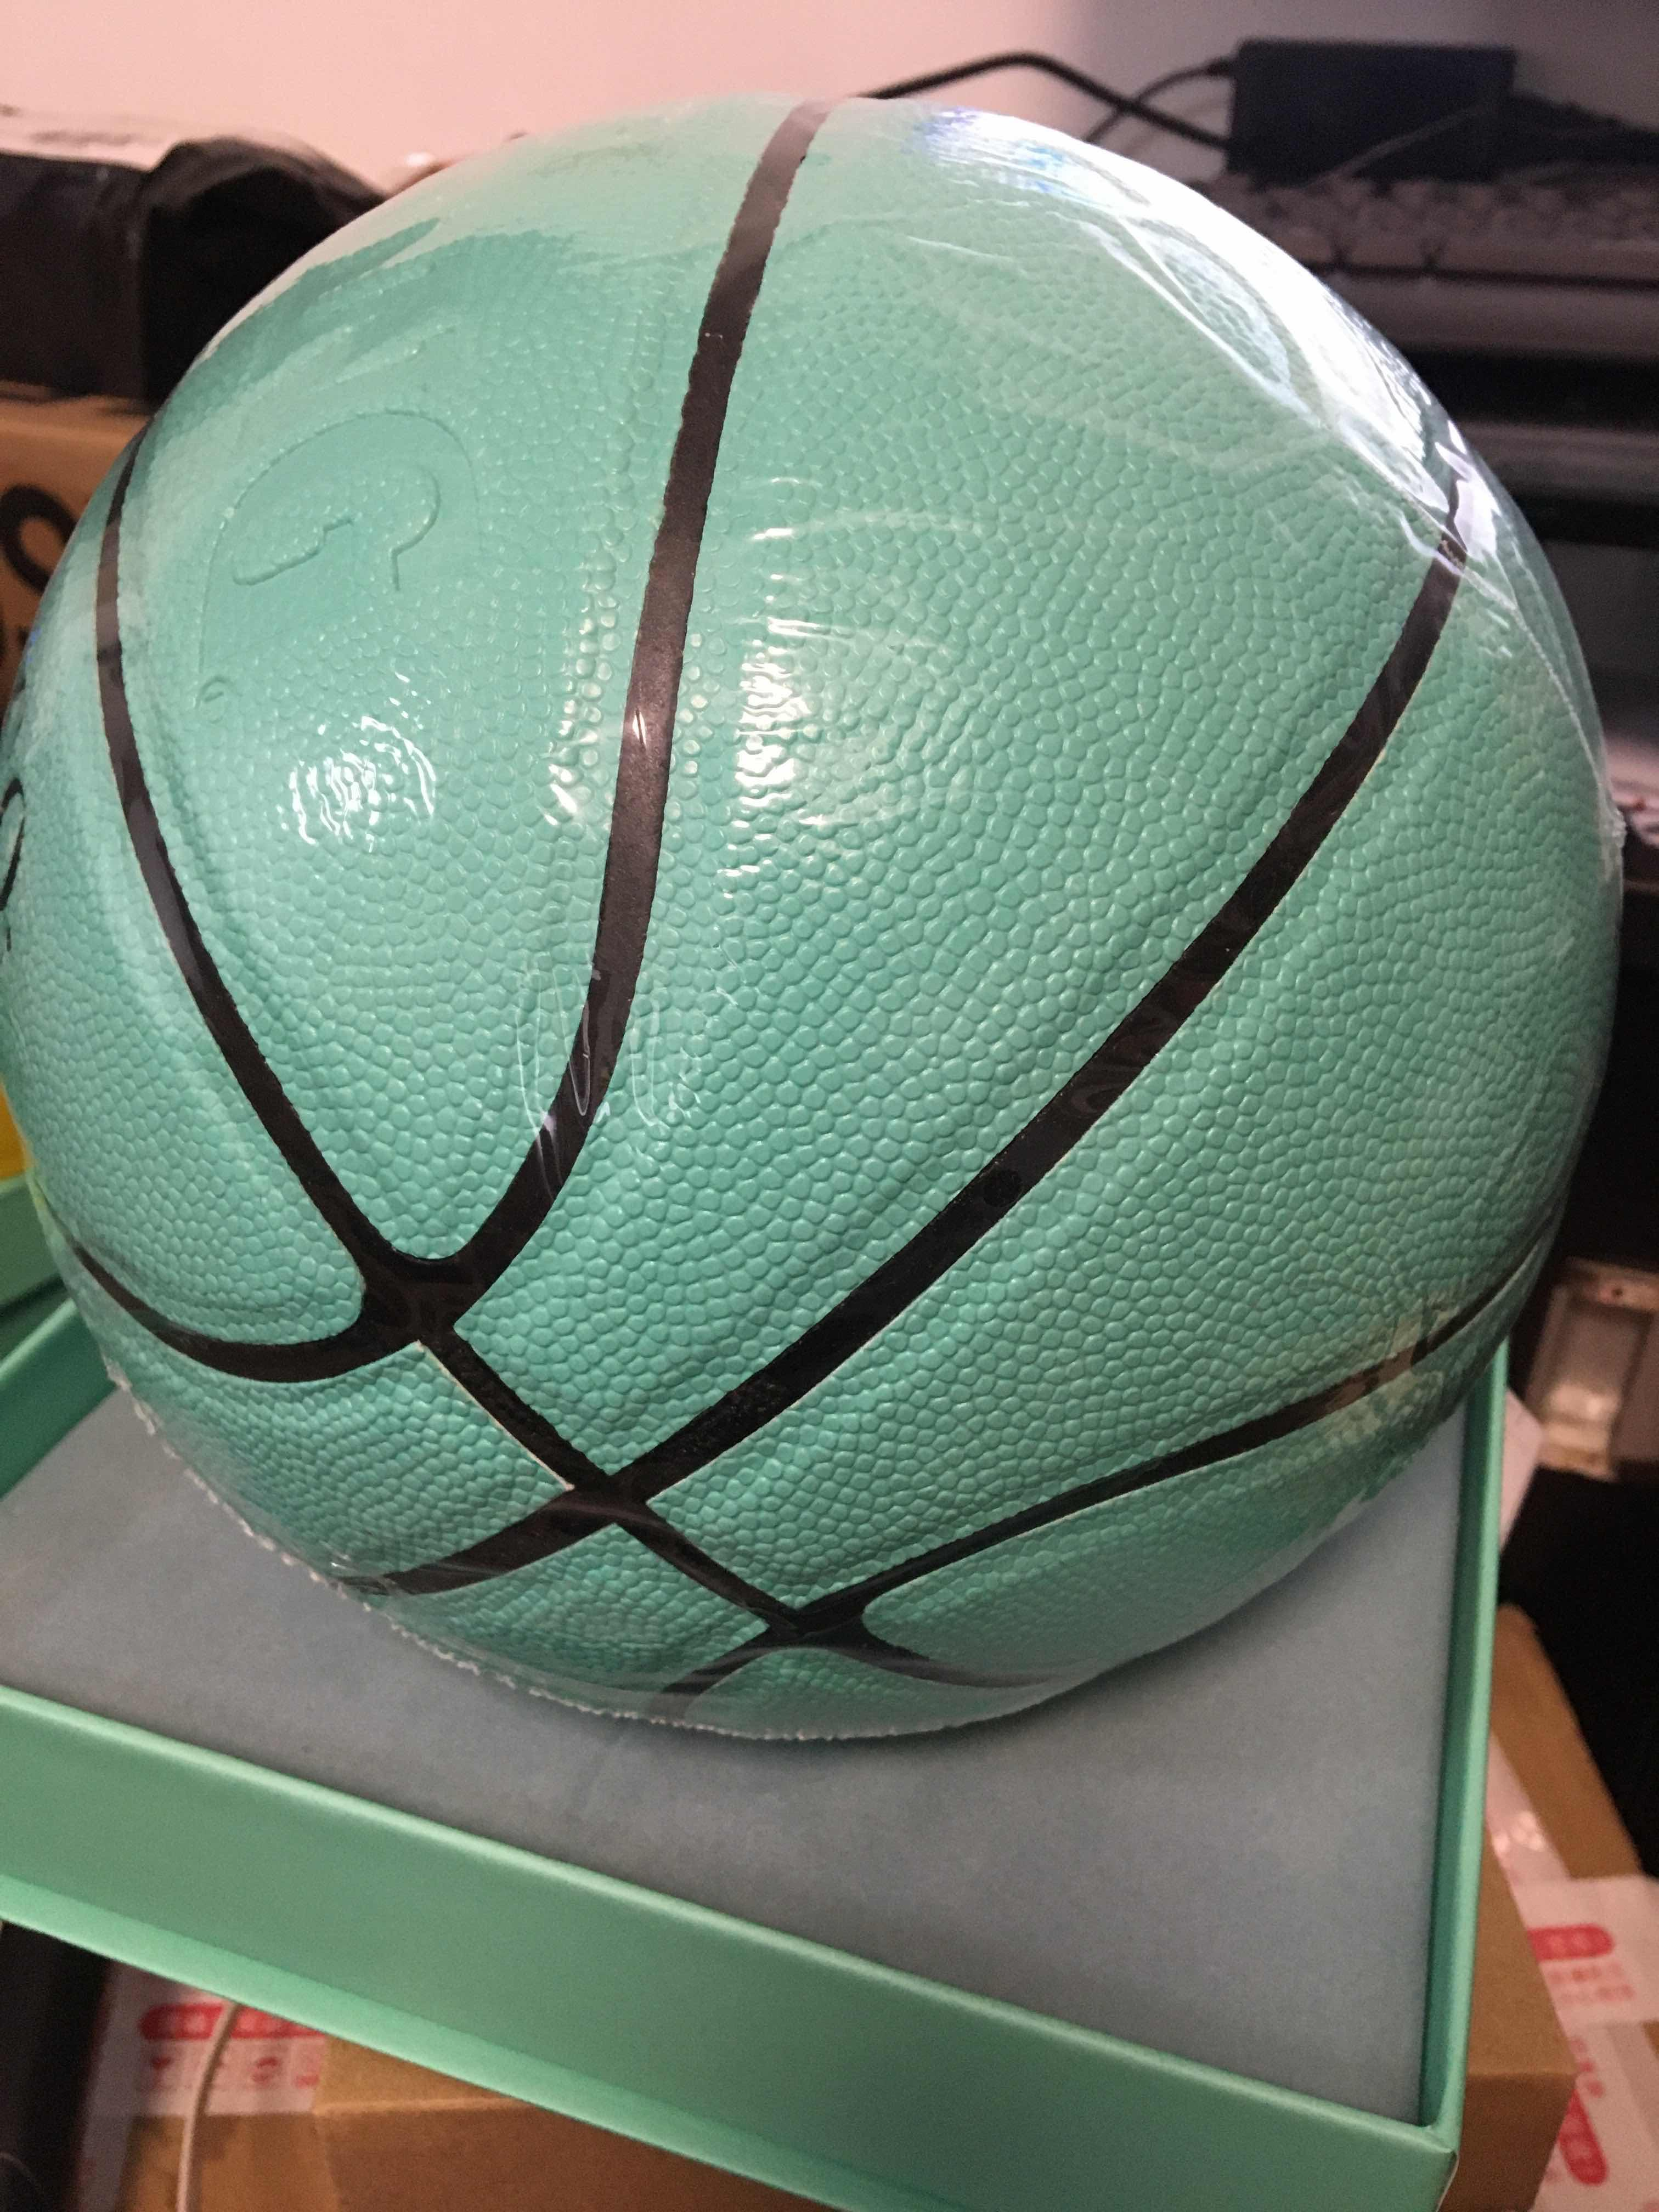 Avec boîte EUR Coupe Tiffany Basketball 2020 Taille 54.5cm Spalding Spalding Joint Basketball Global Limited Édition Limitée Fournisseur Hococal Top Quality Ball